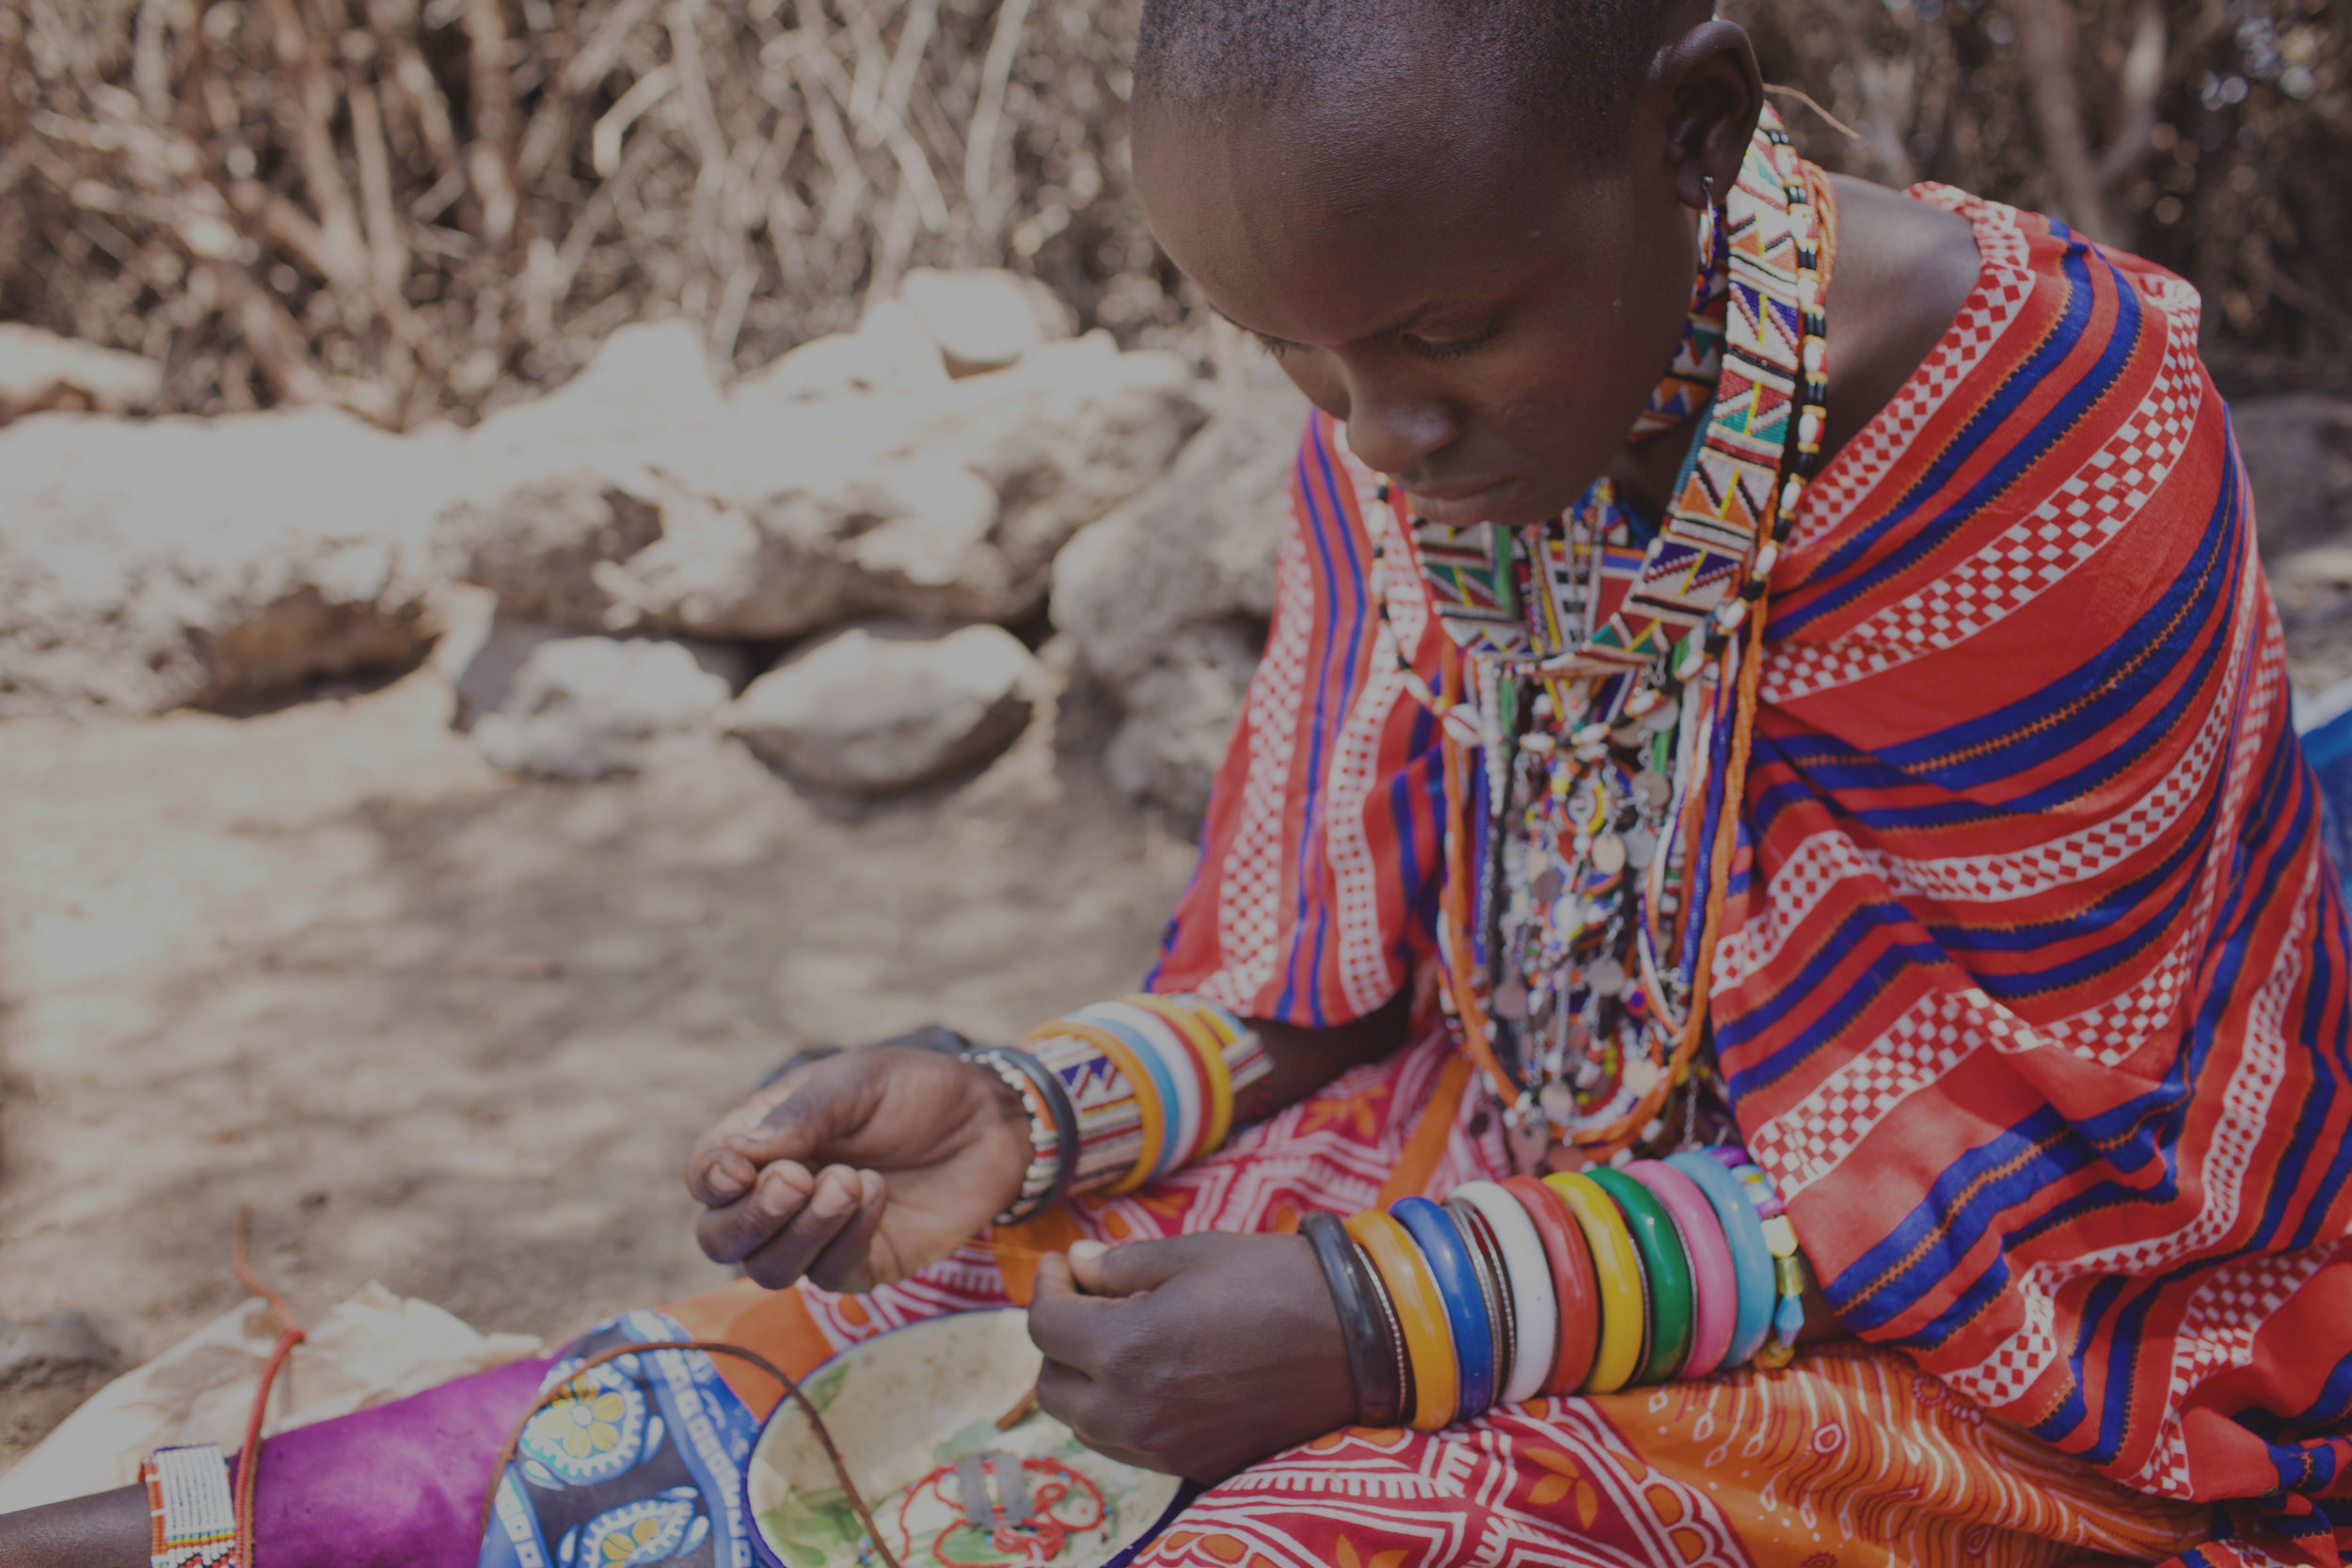 WE PROVIDE ARTISANS ACCESS TO THE GLOBAL MARKET -